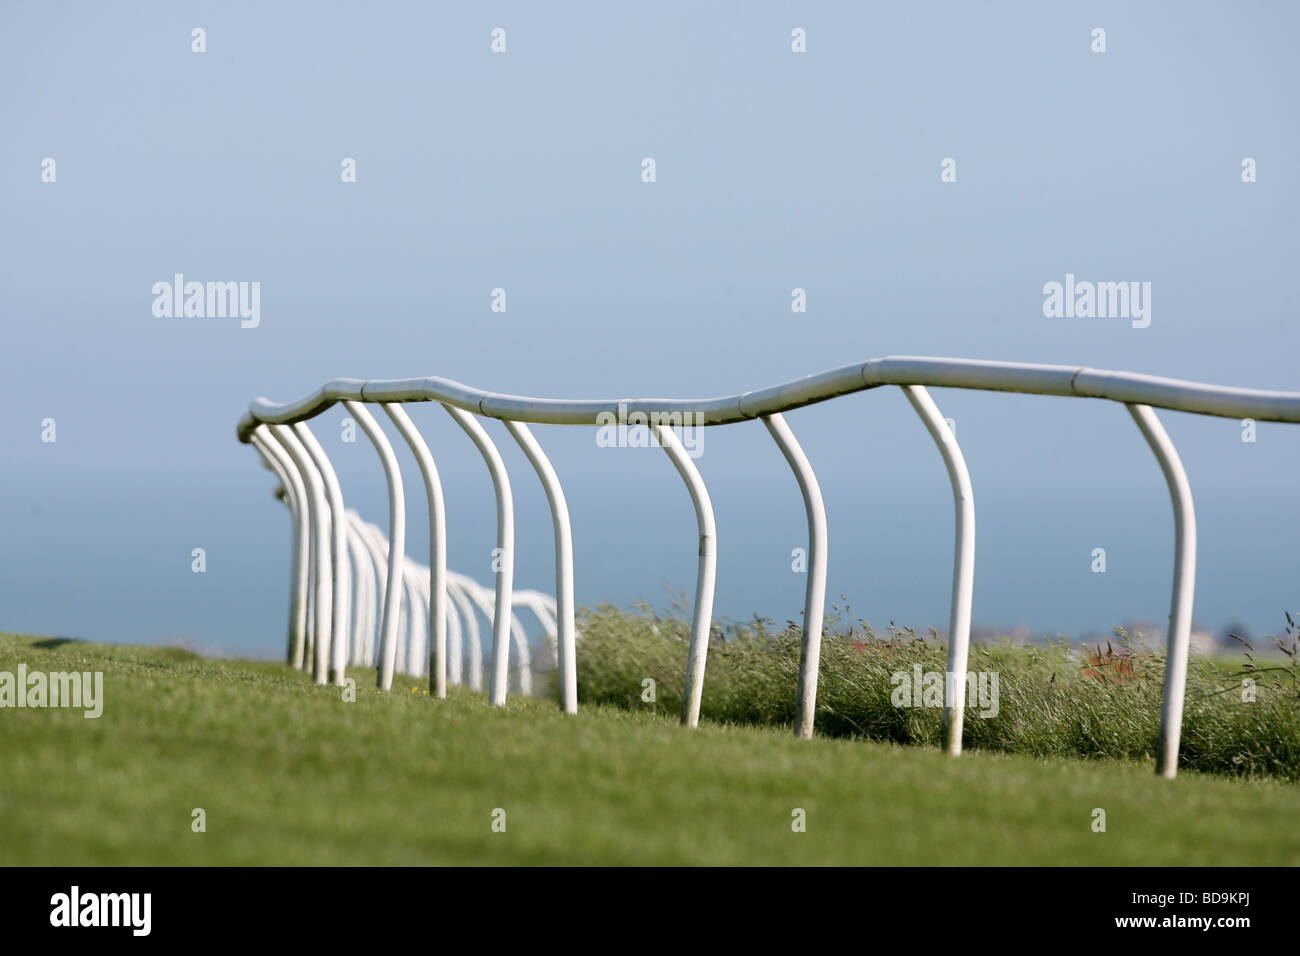 A view of the Running Rails at a Race Course. - Stock Image